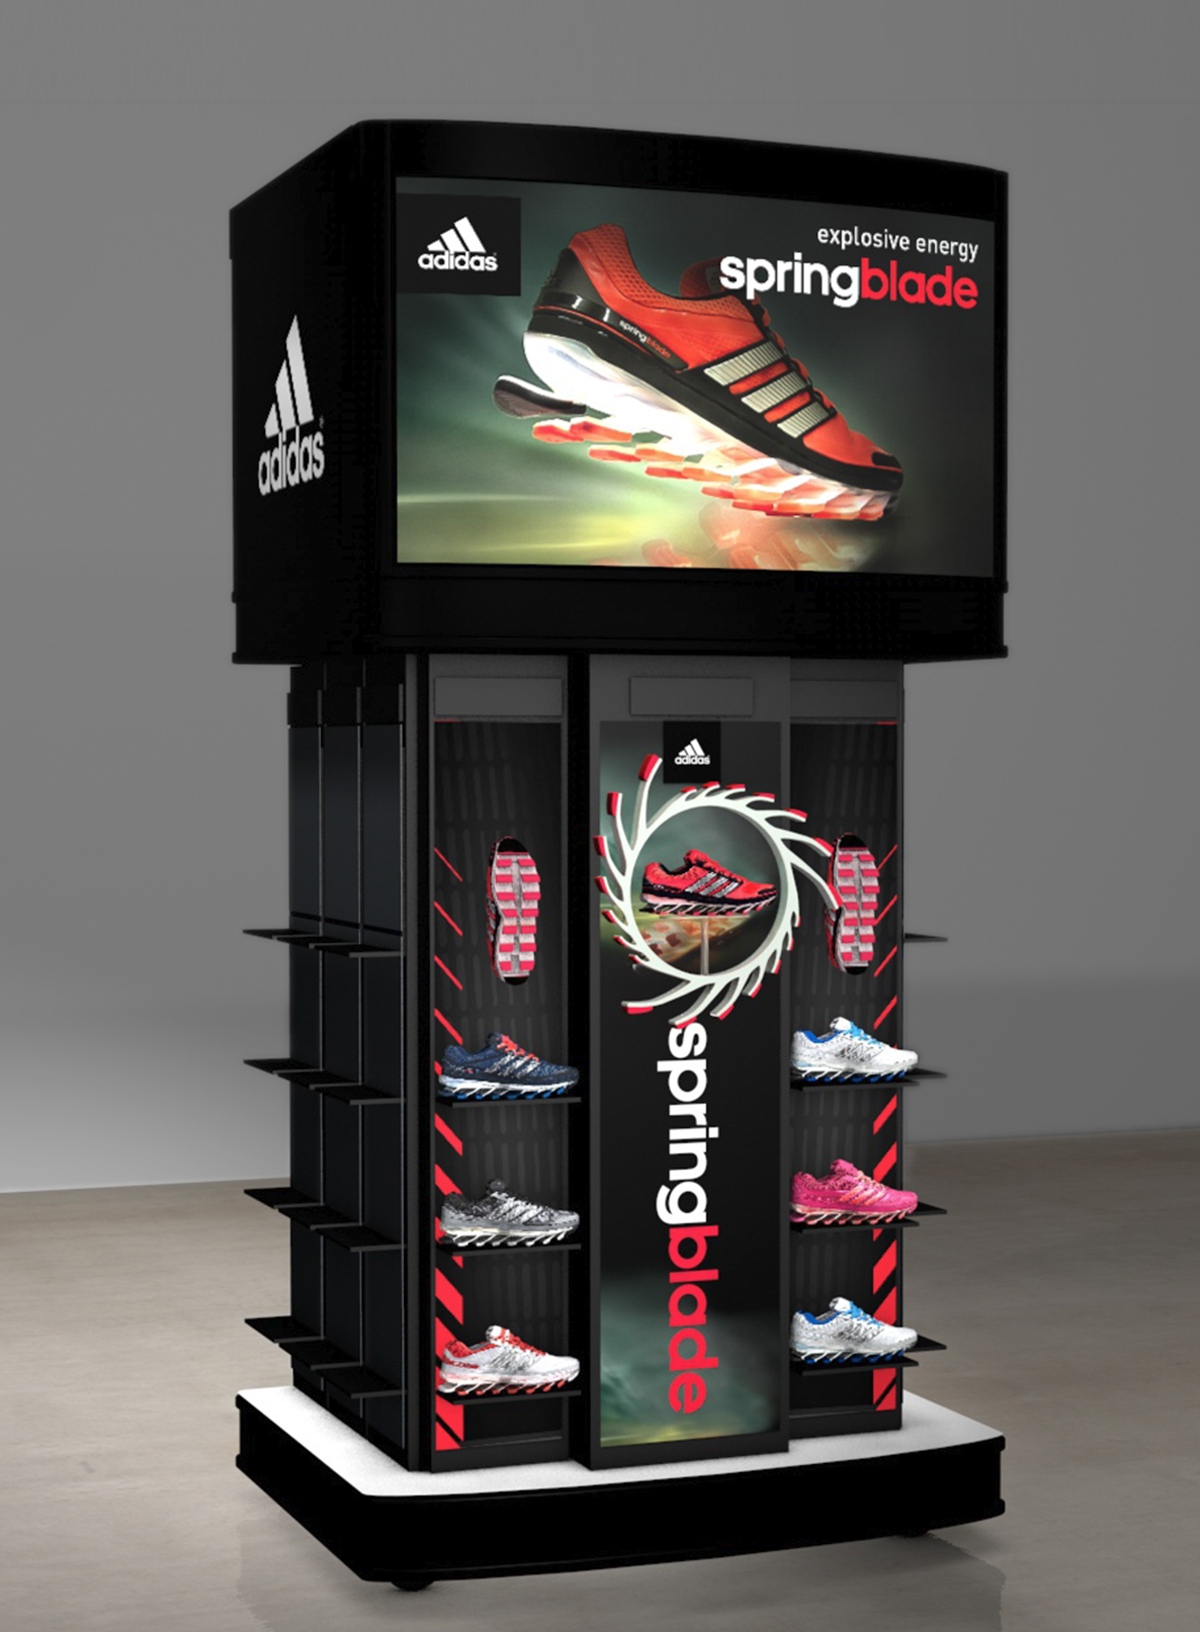 adidas Springblade free-standing fixture render featuring shoes and graphic